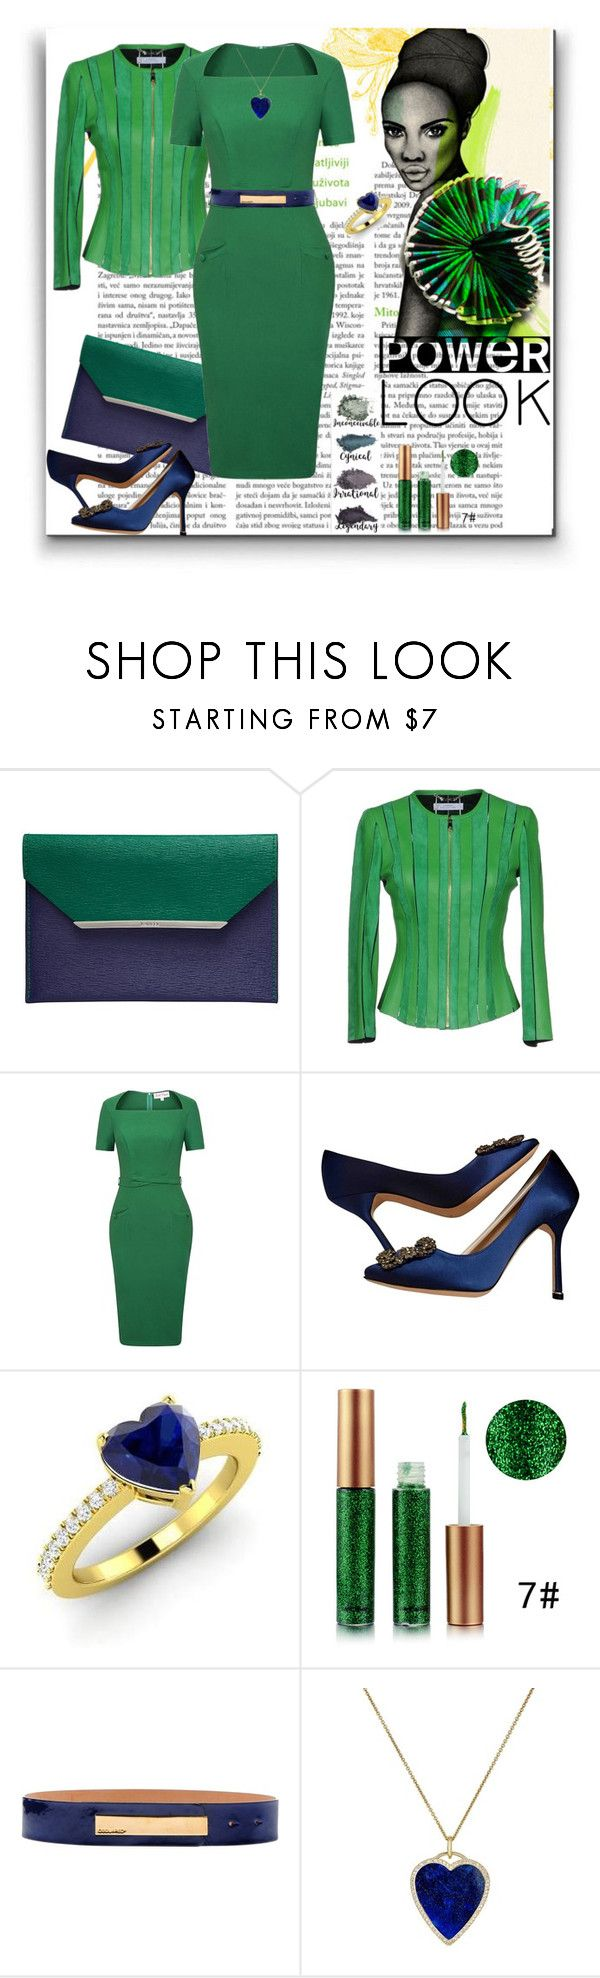 """Office green"" by georgine-d ❤ liked on Polyvore featuring Lancel, Versace, Manolo Blahnik, Brumlow, Diamondere, Dsquared2, Jennifer Meyer Jewelry, contest, office and fiftyshadesofgreen"